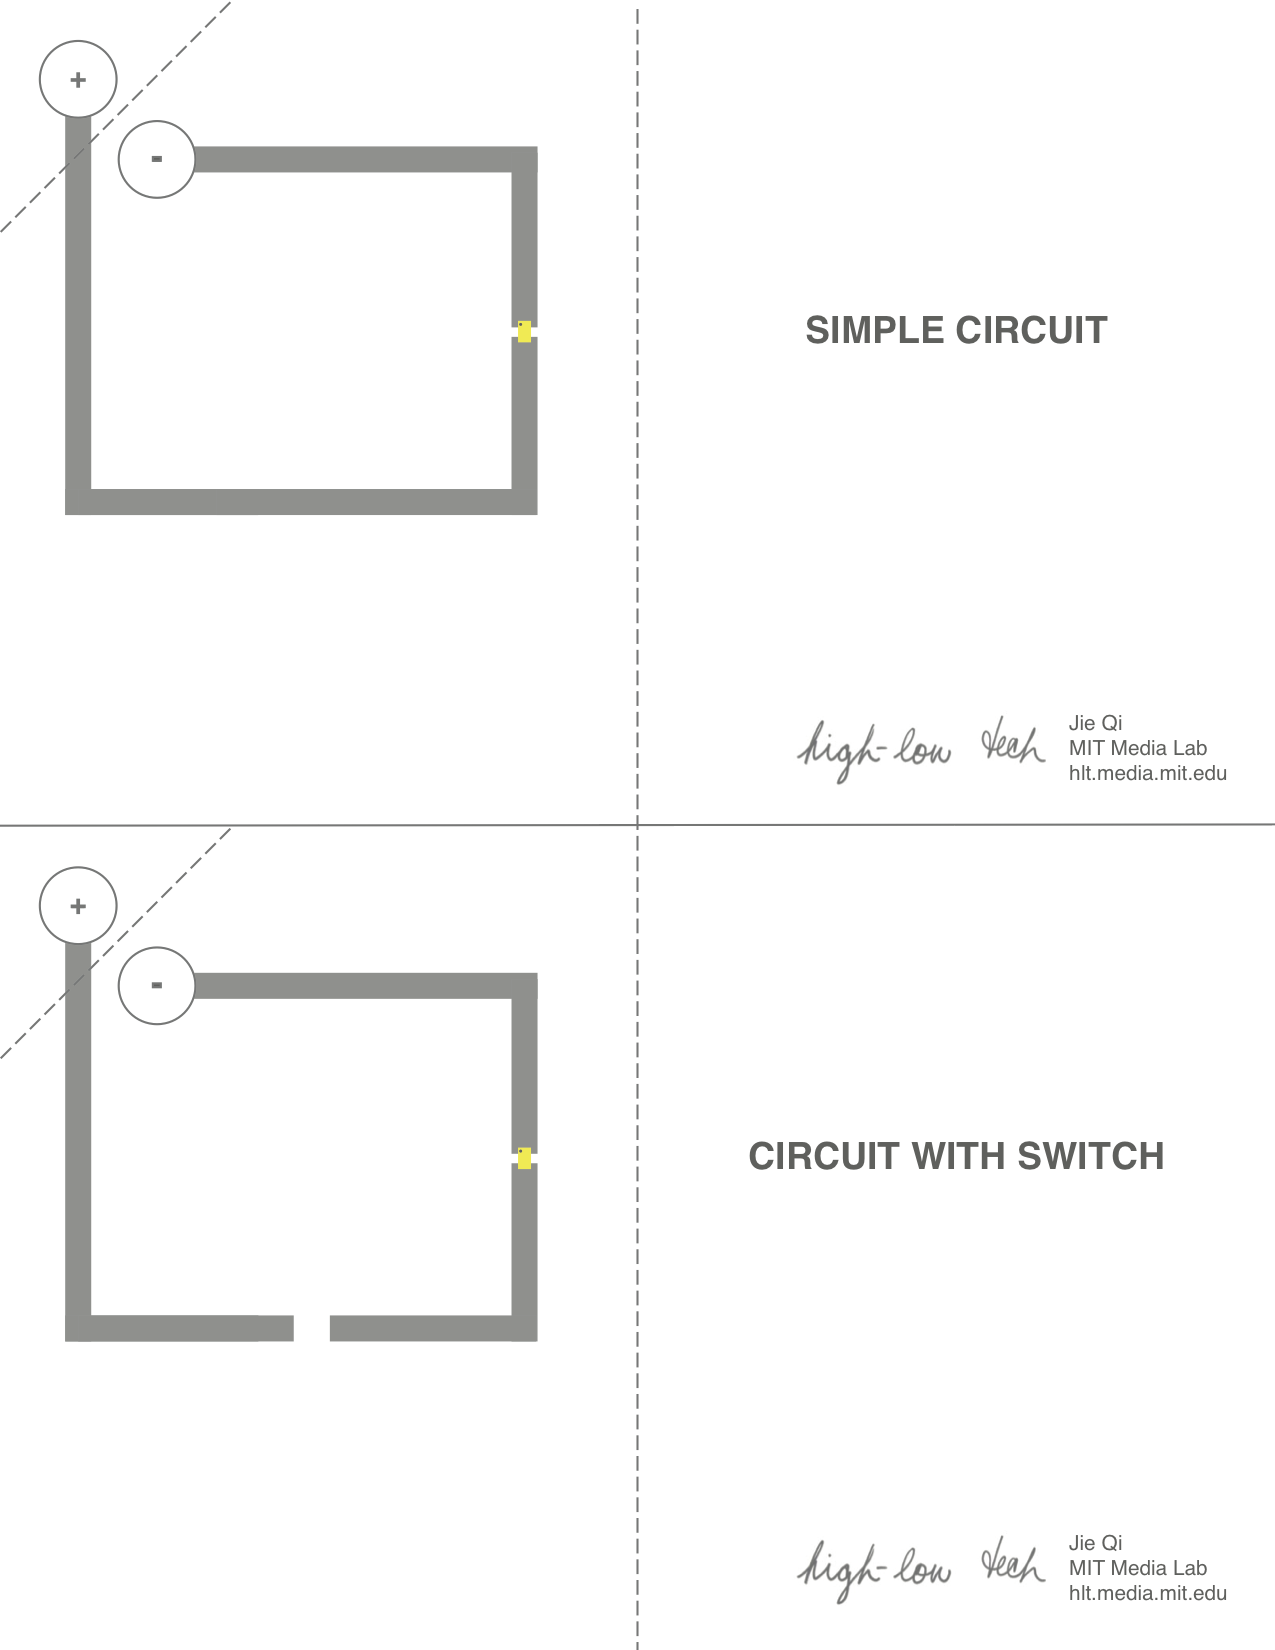 Paper Circuits Resources Blueprint By Digital Harbor Foundation Simple Electronics Hobby Circuit Templates